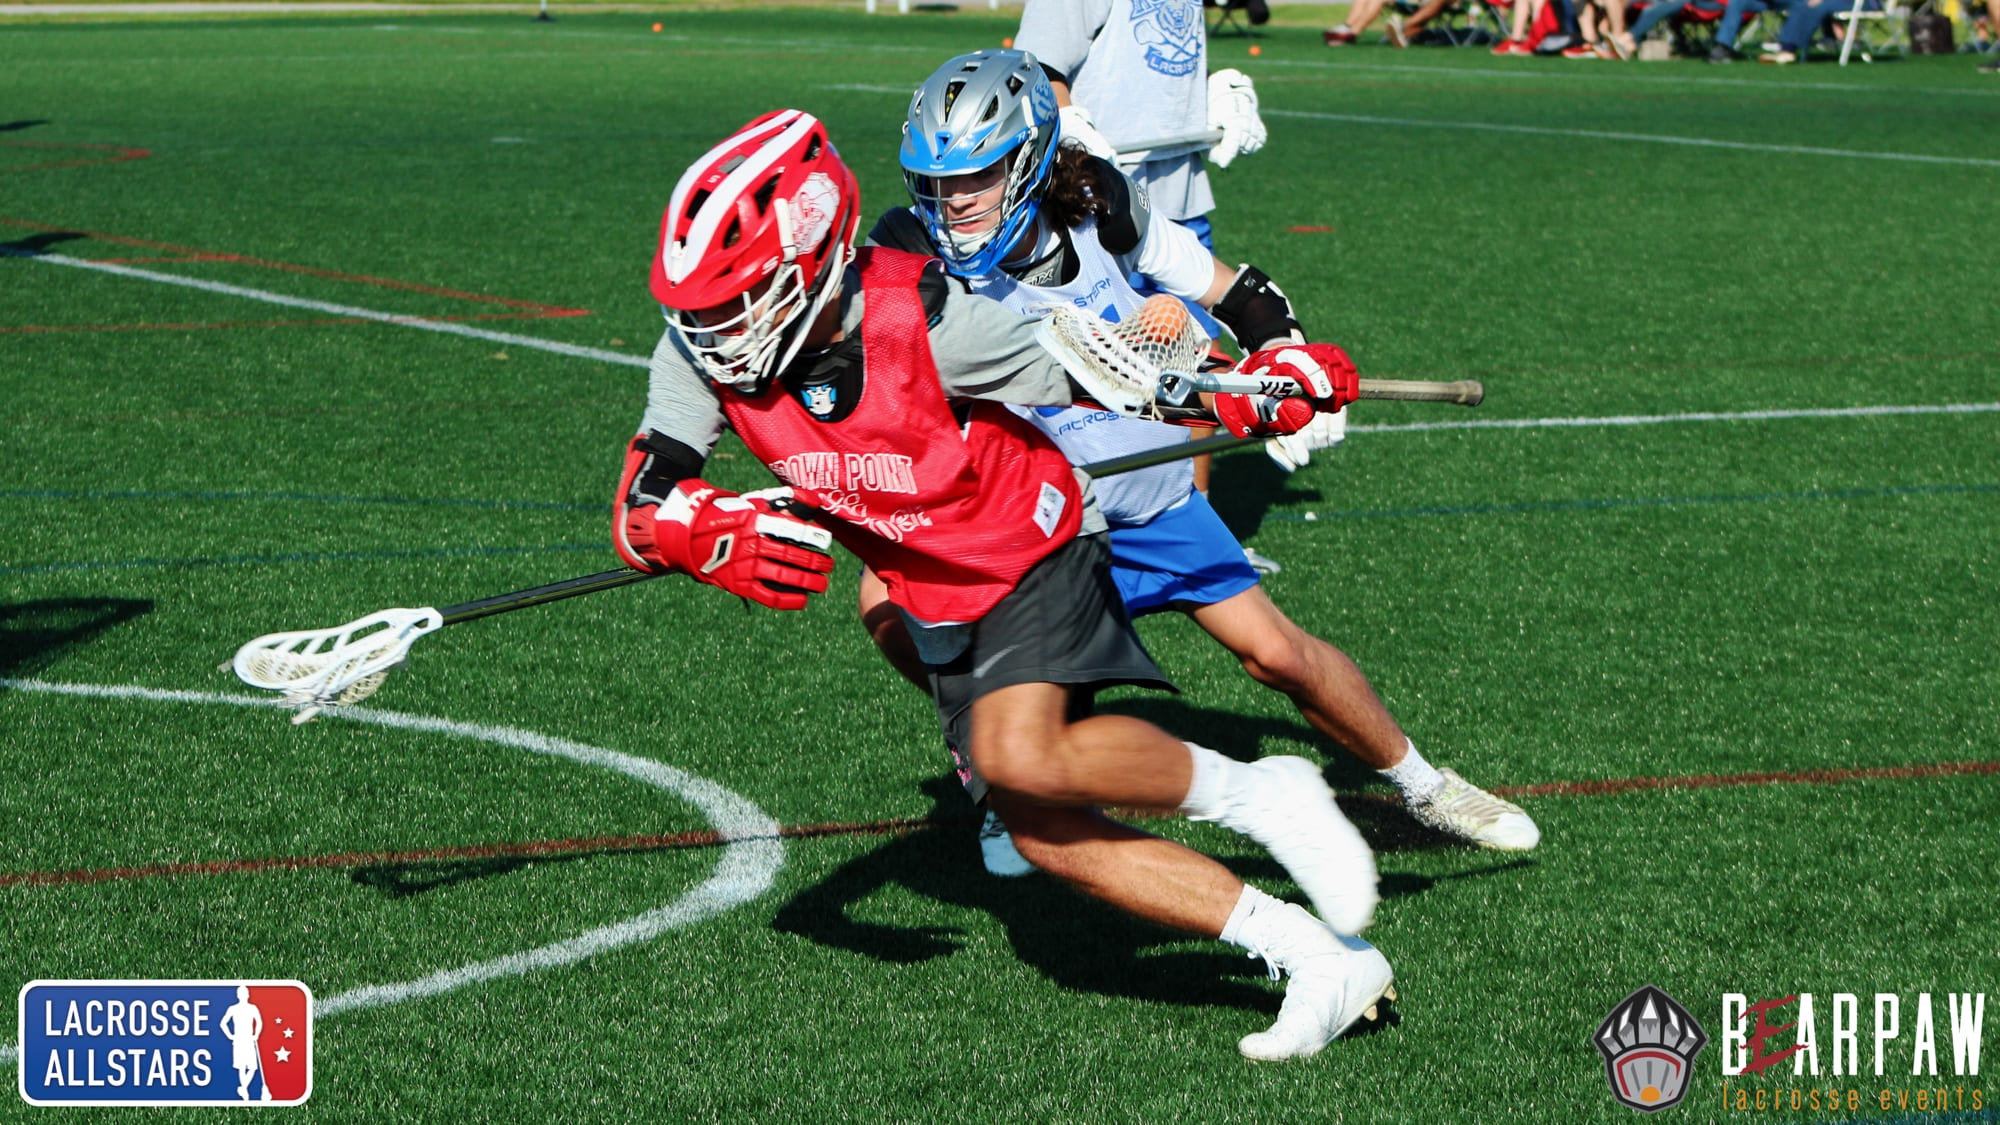 Great Midwest Shootout 2018 Bearpaw Lacrosse Events